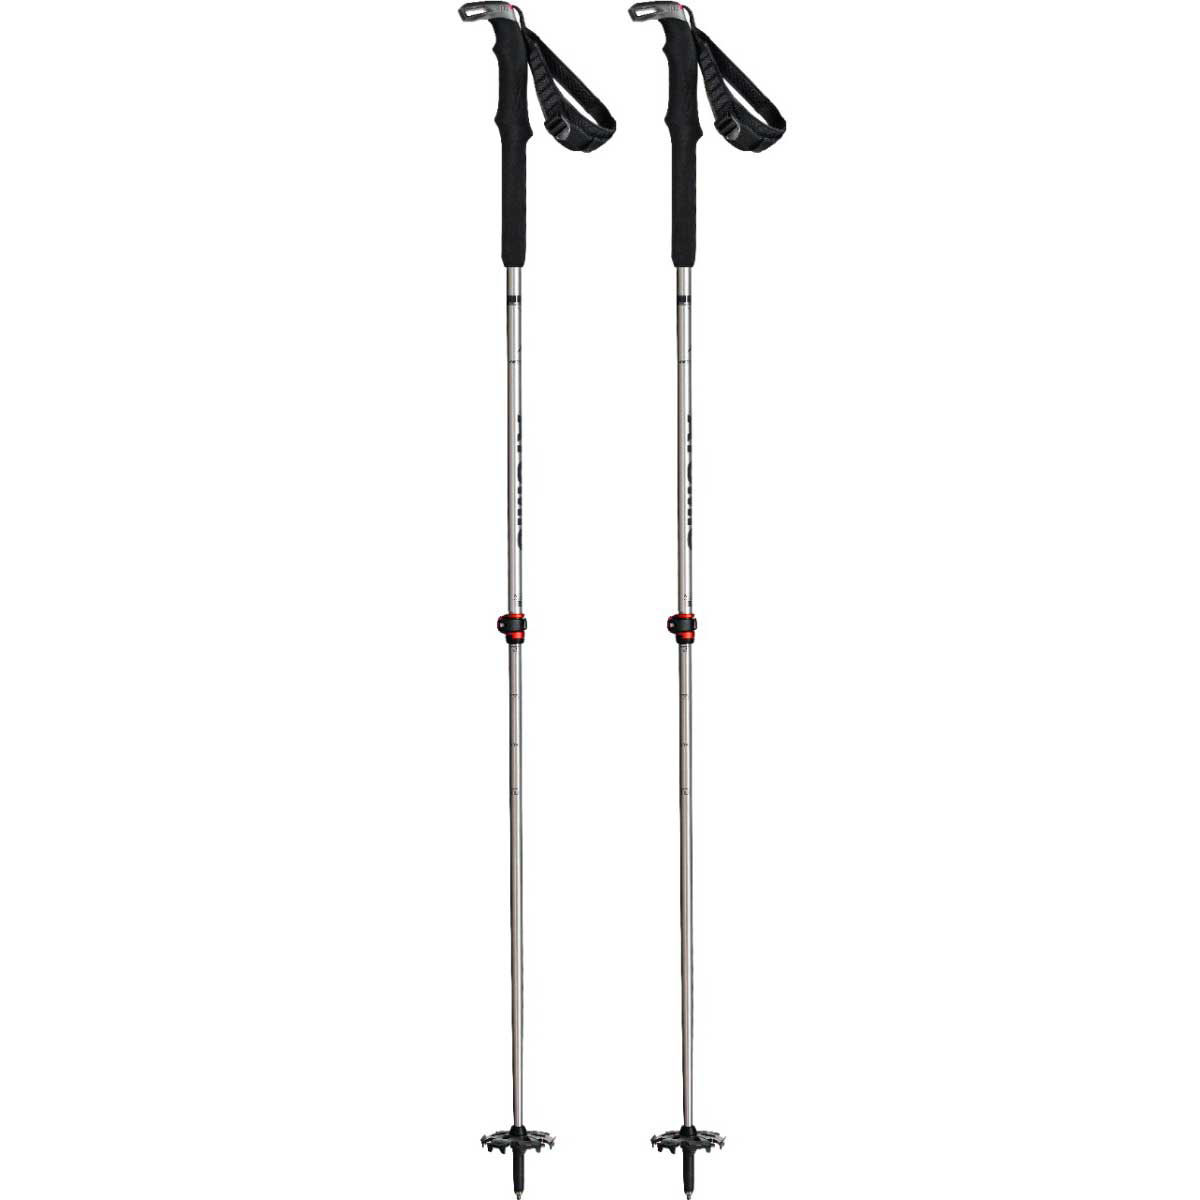 Atomic BCT Touring SQS telescoping ski poles in Silver Grey